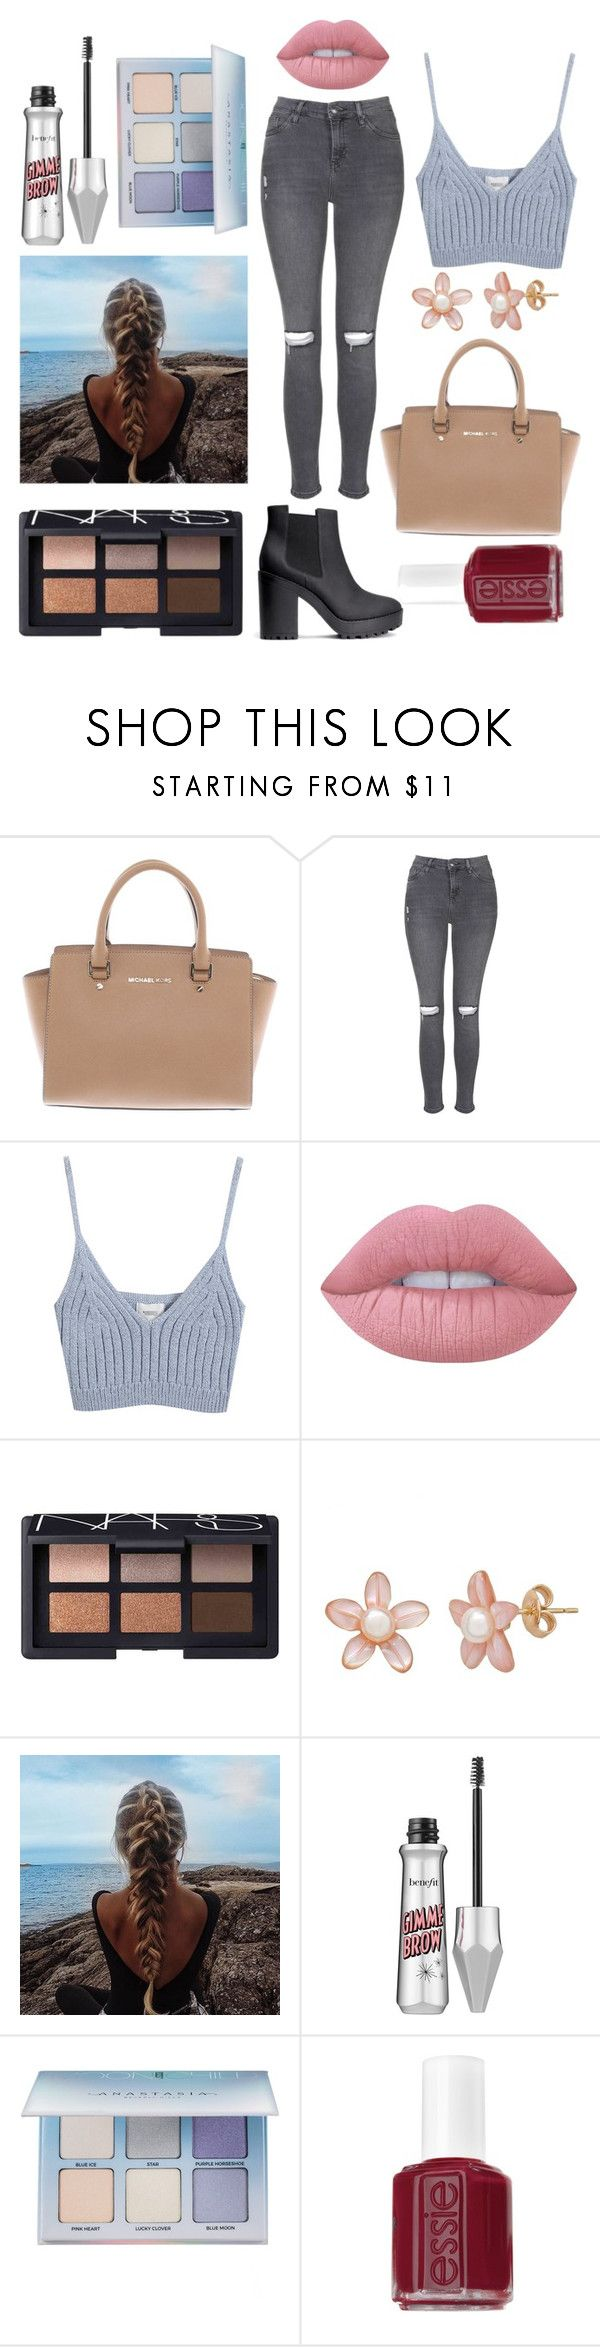 """1 Page Challenge (read description for more)"" by googymartin ❤ liked on Polyvore featuring Michael Kors, Topshop, Chicnova Fashion, Lime Crime, NARS Cosmetics, Benefit, Anastasia Beverly Hills, Essie and H&M"